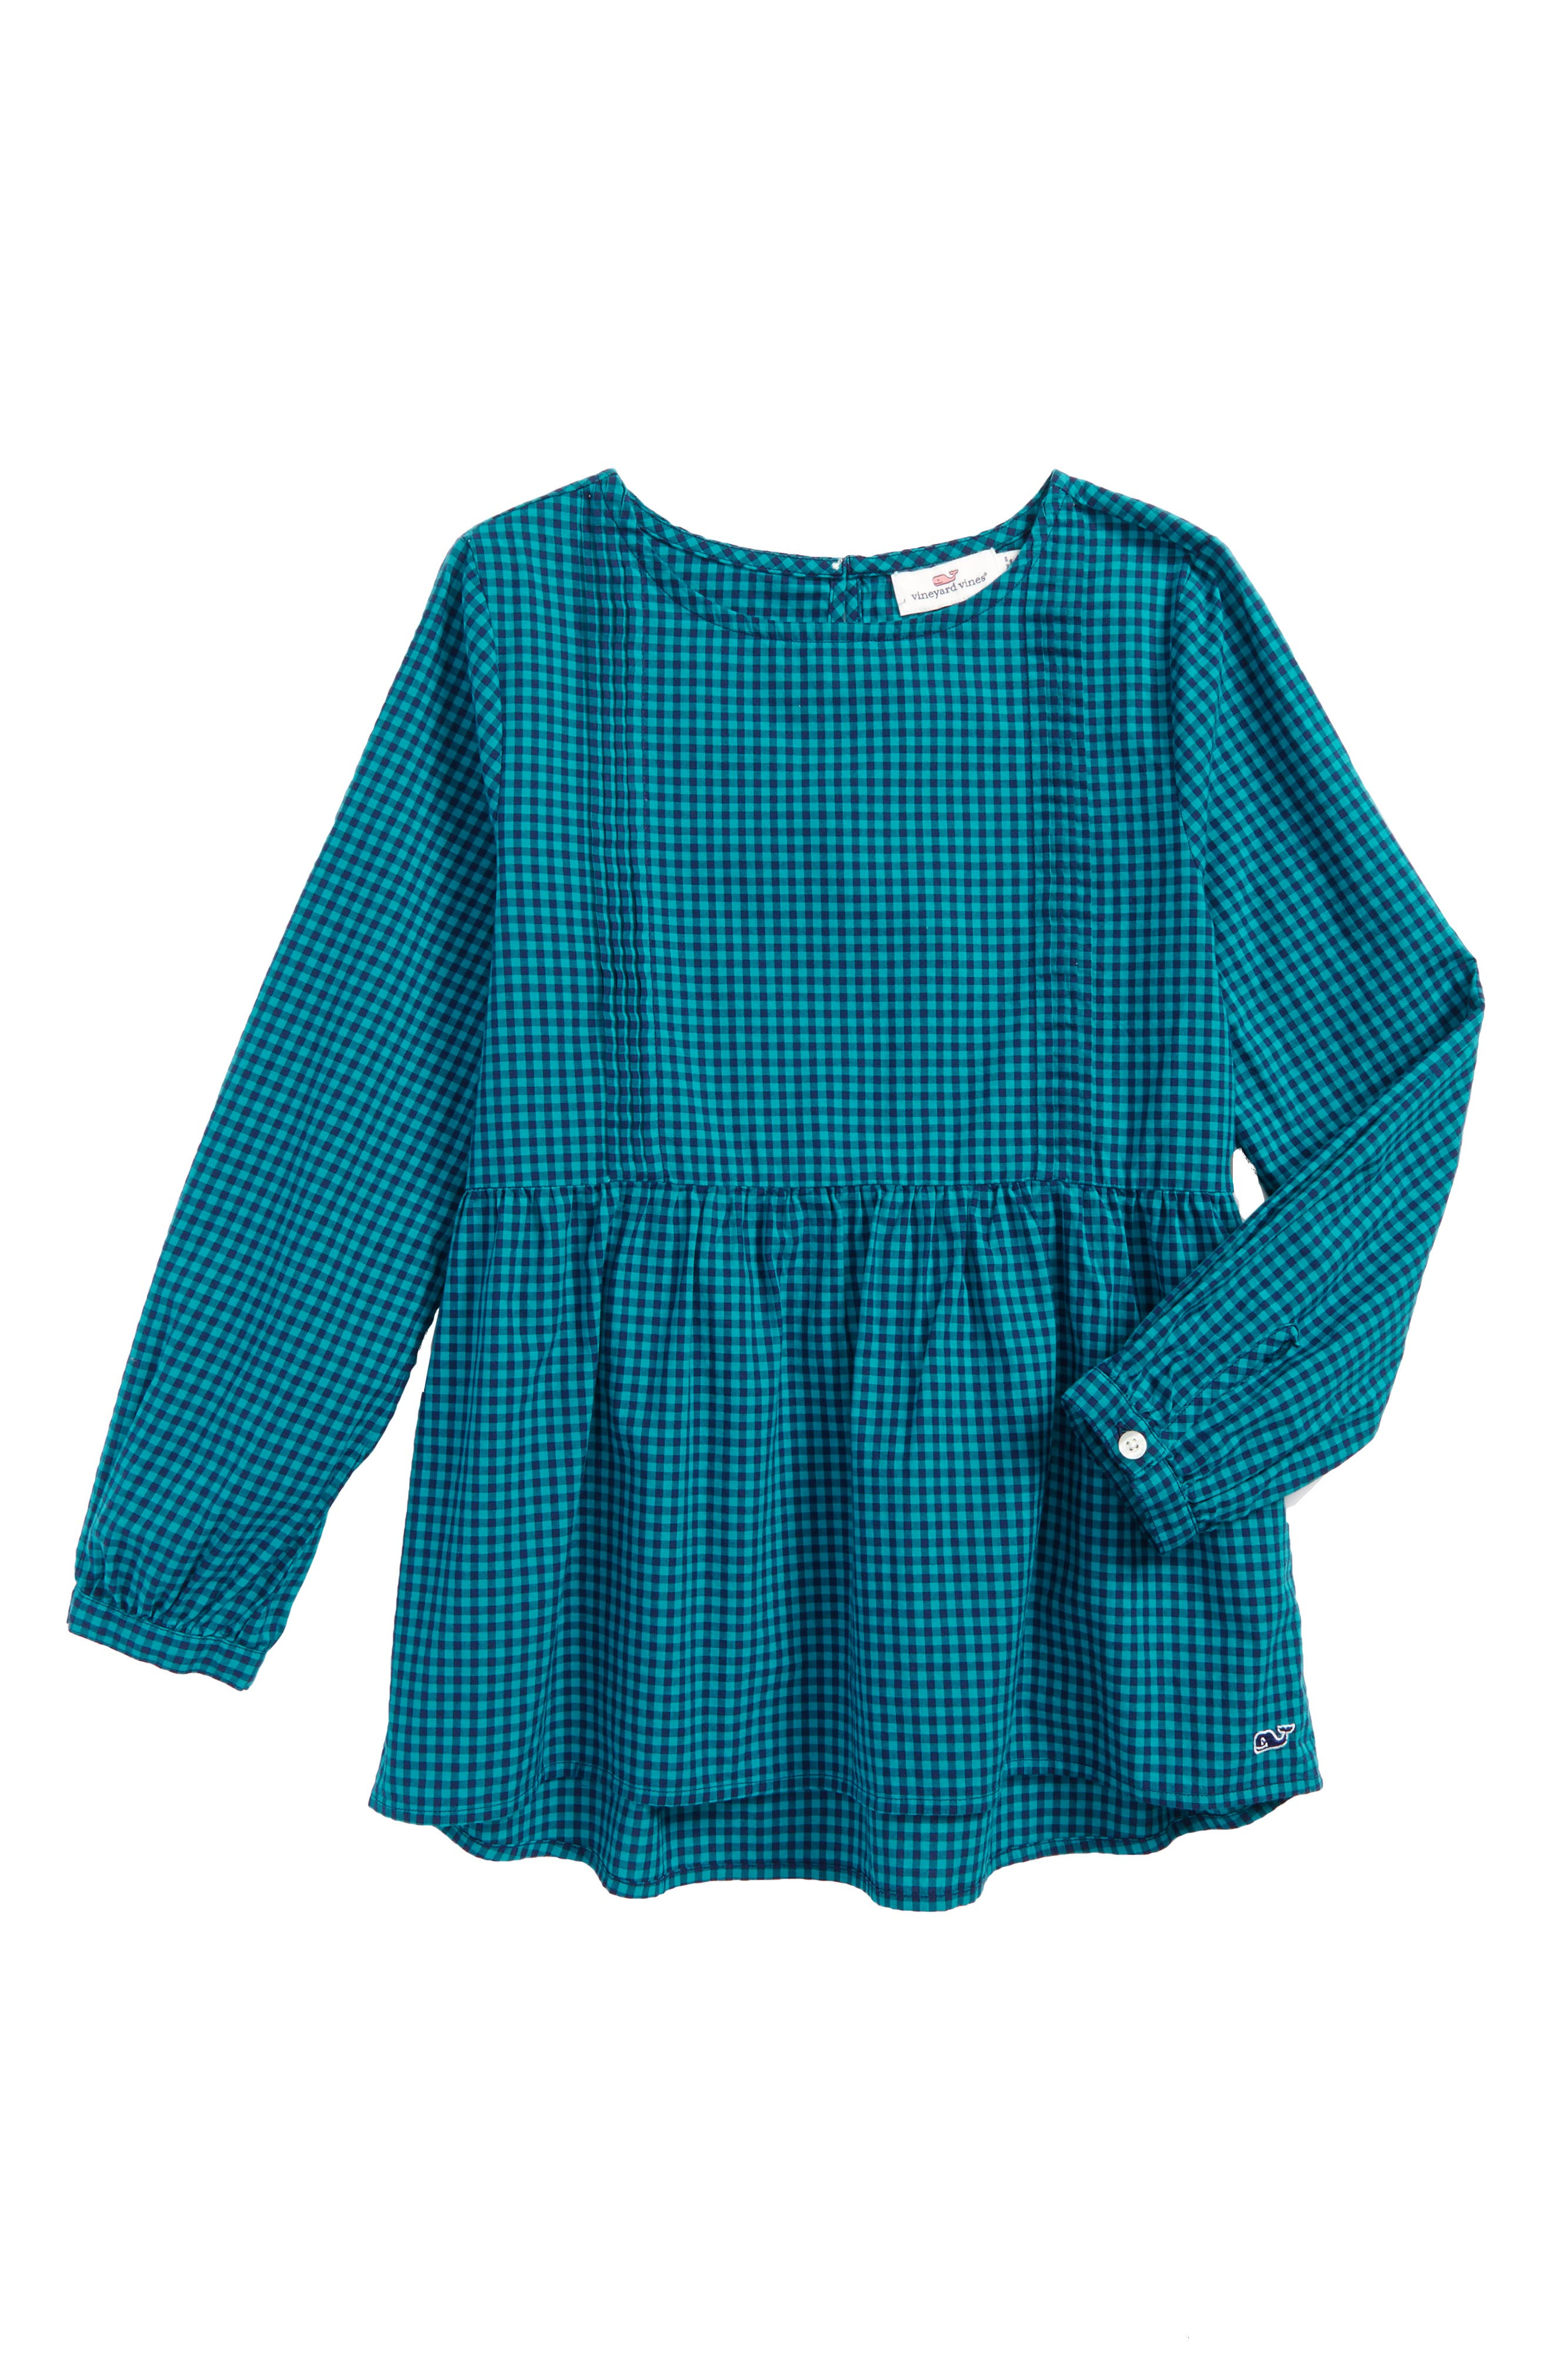 Alternate Image 1 Selected - vineyard vines Gingham Woven Top (Little Girls & Big Girls)